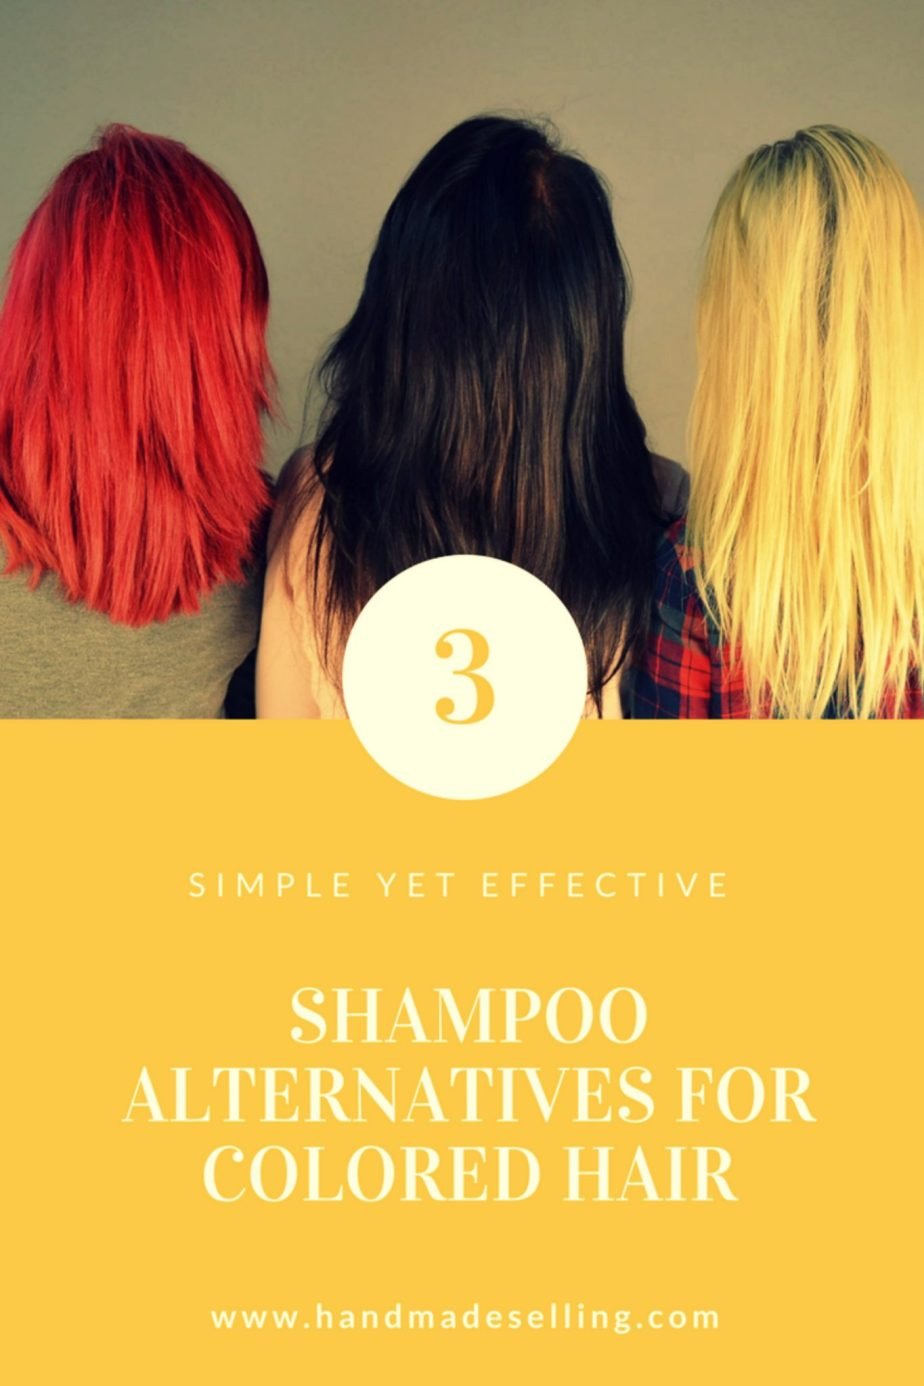 Shampoo Alternatives For Colored Hair Handmadeselling